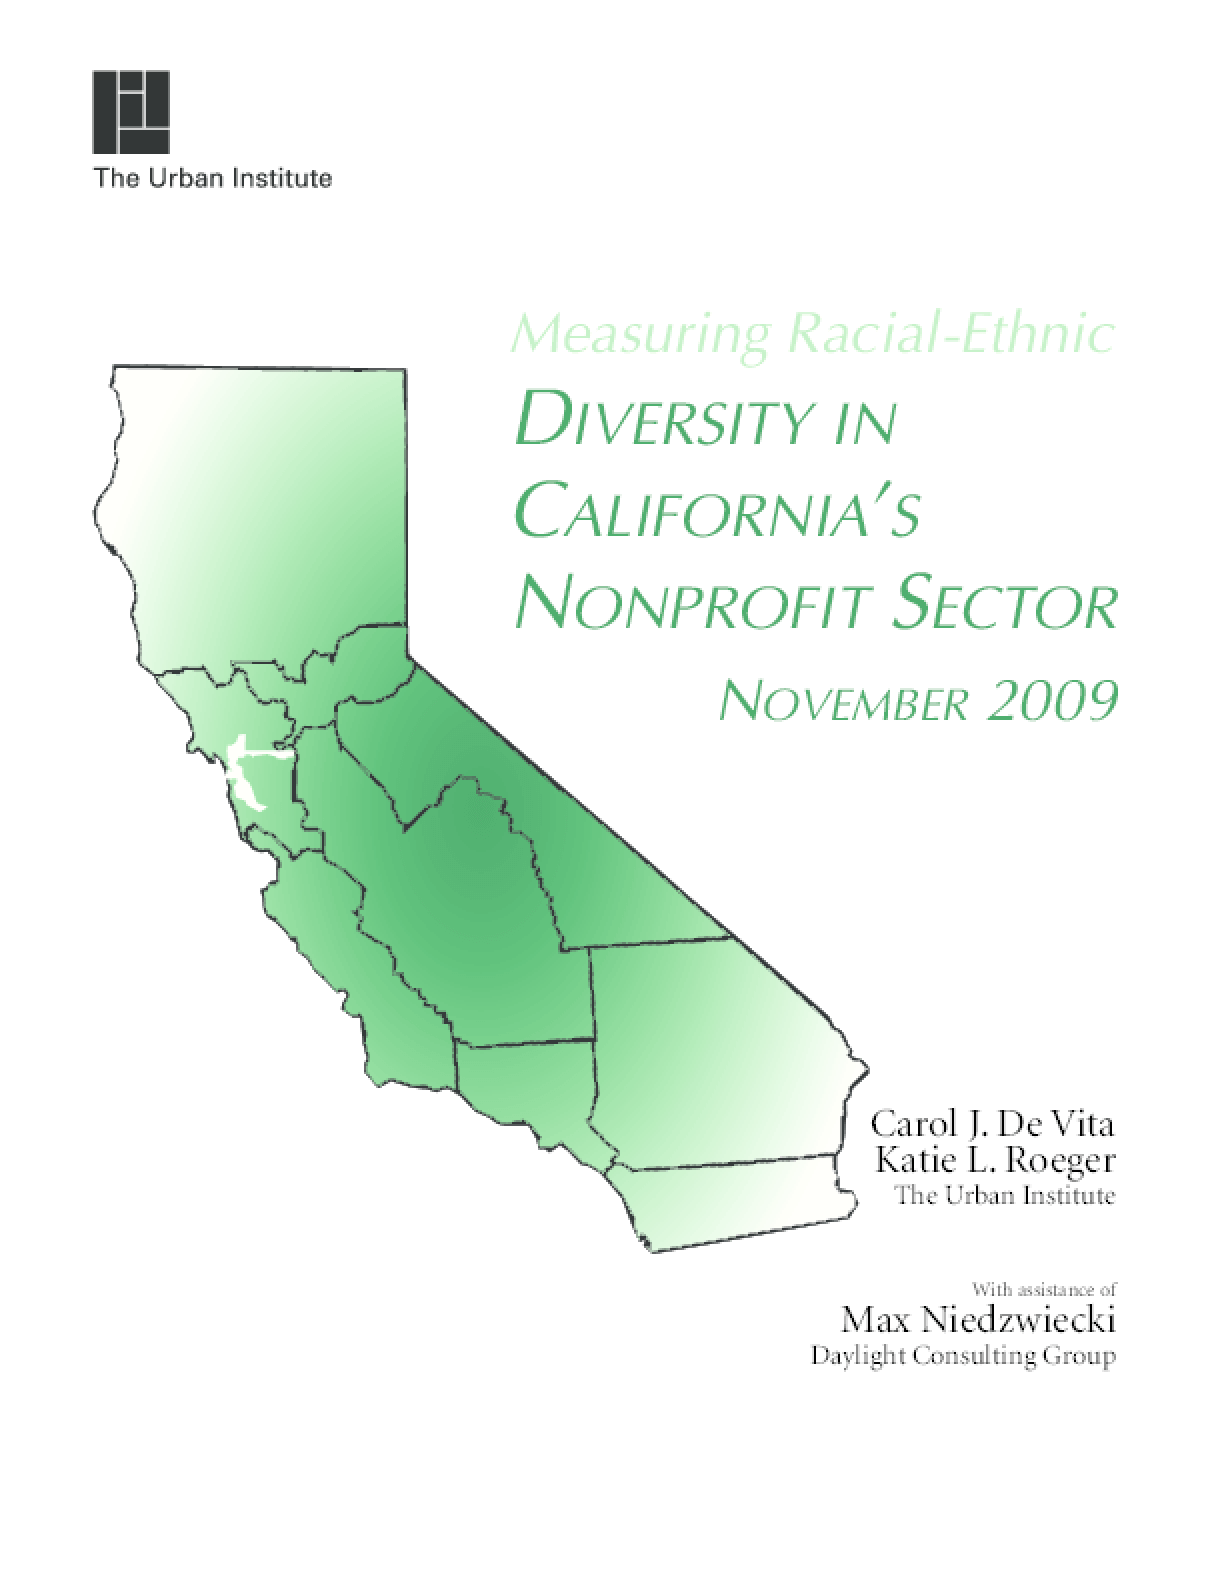 Measuring Racial-Ethnic Diversity in California's Nonprofit Sector